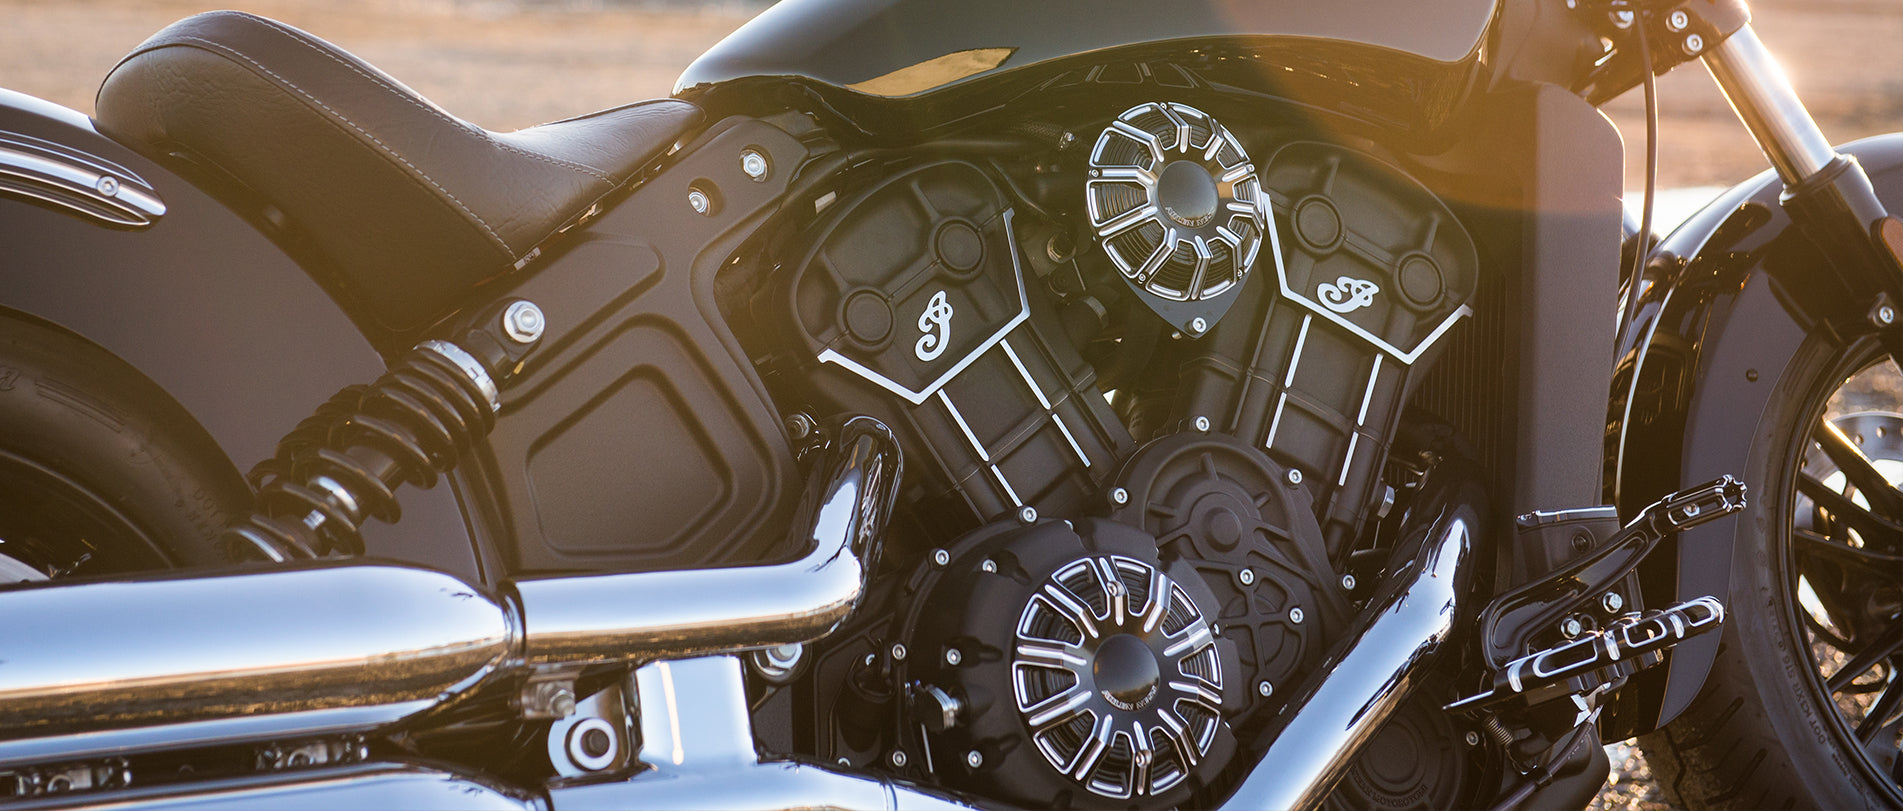 Footpegs for Indian Motorcycle®